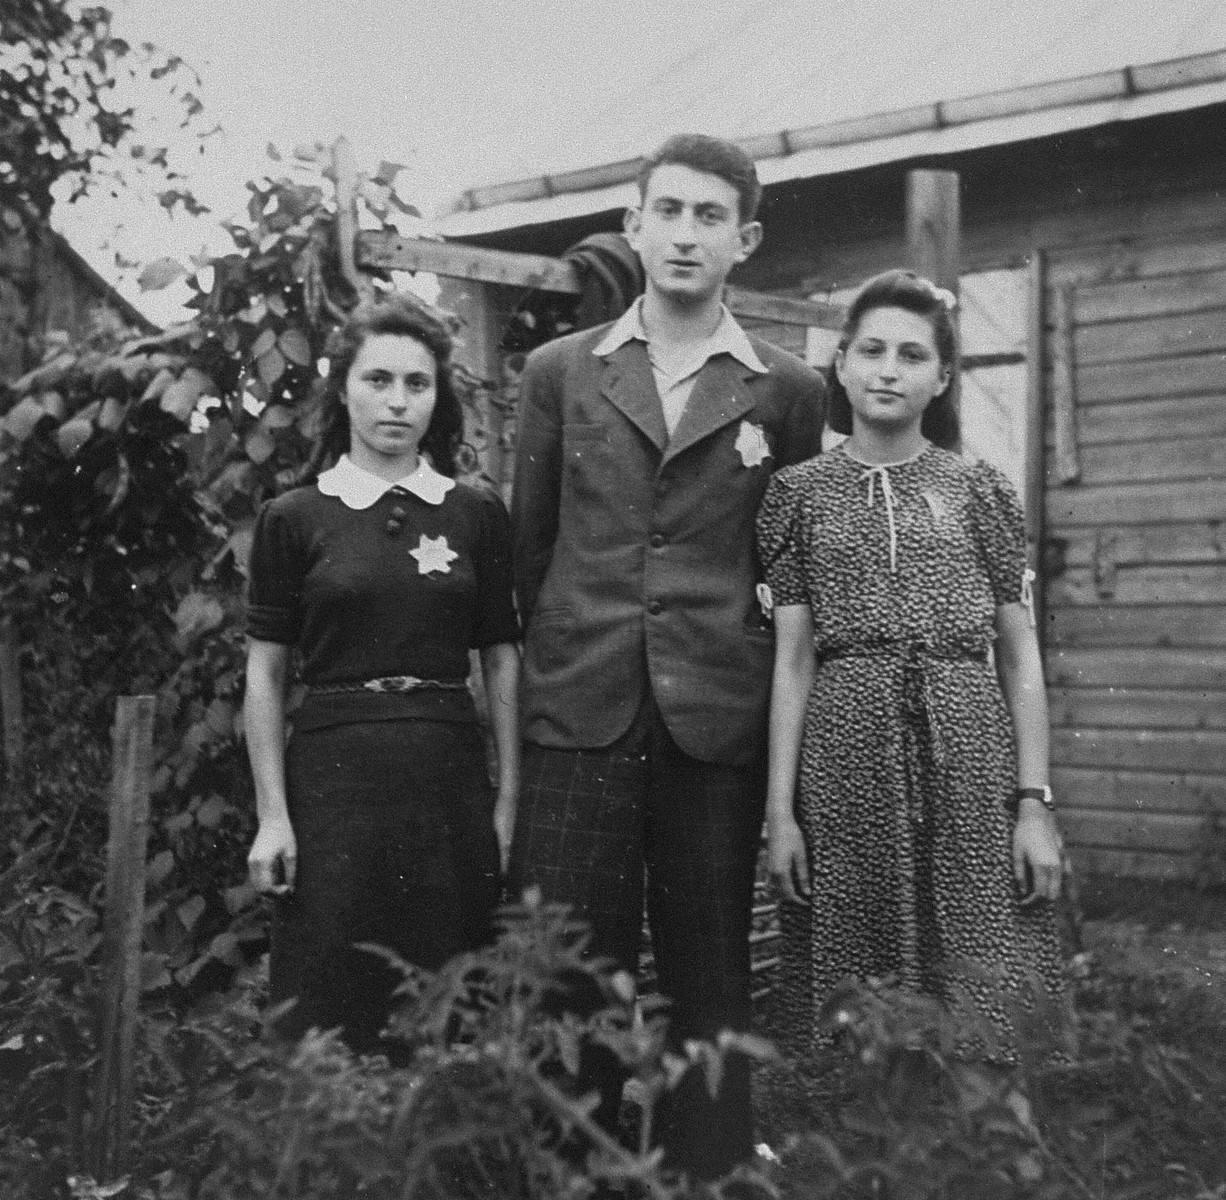 Three members of the Irgun Brit Zion Zionist youth movement in the Kovno ghetto.  Pictured from left to right are: Nechama Boruchson, Moshe Shapiro and Sara Benjamin Leibson.